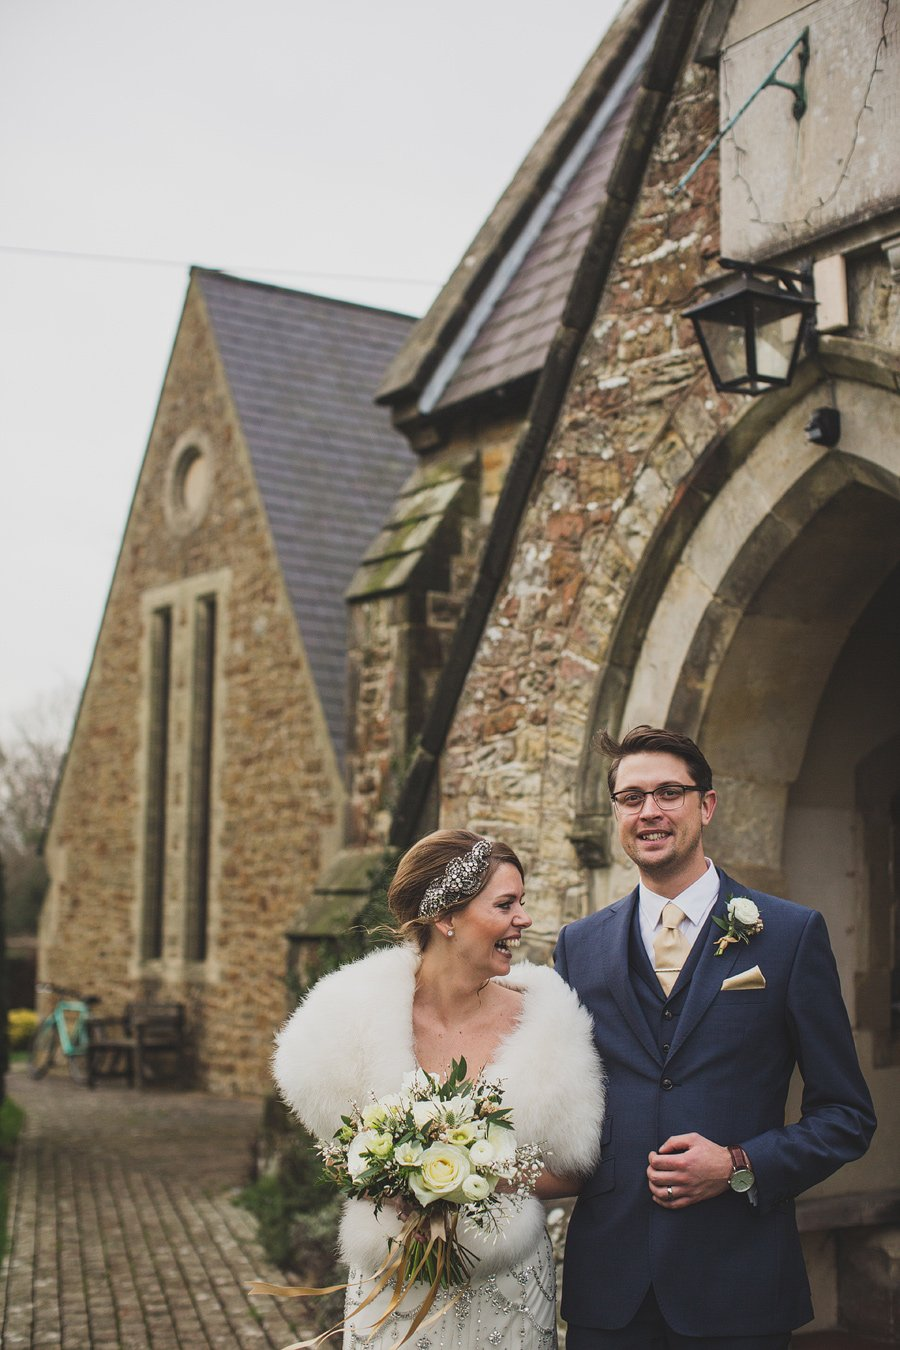 Buxted-Park-Wedding-Photographer-Suzanne-and-Matt-Simon-Fazackarley-35